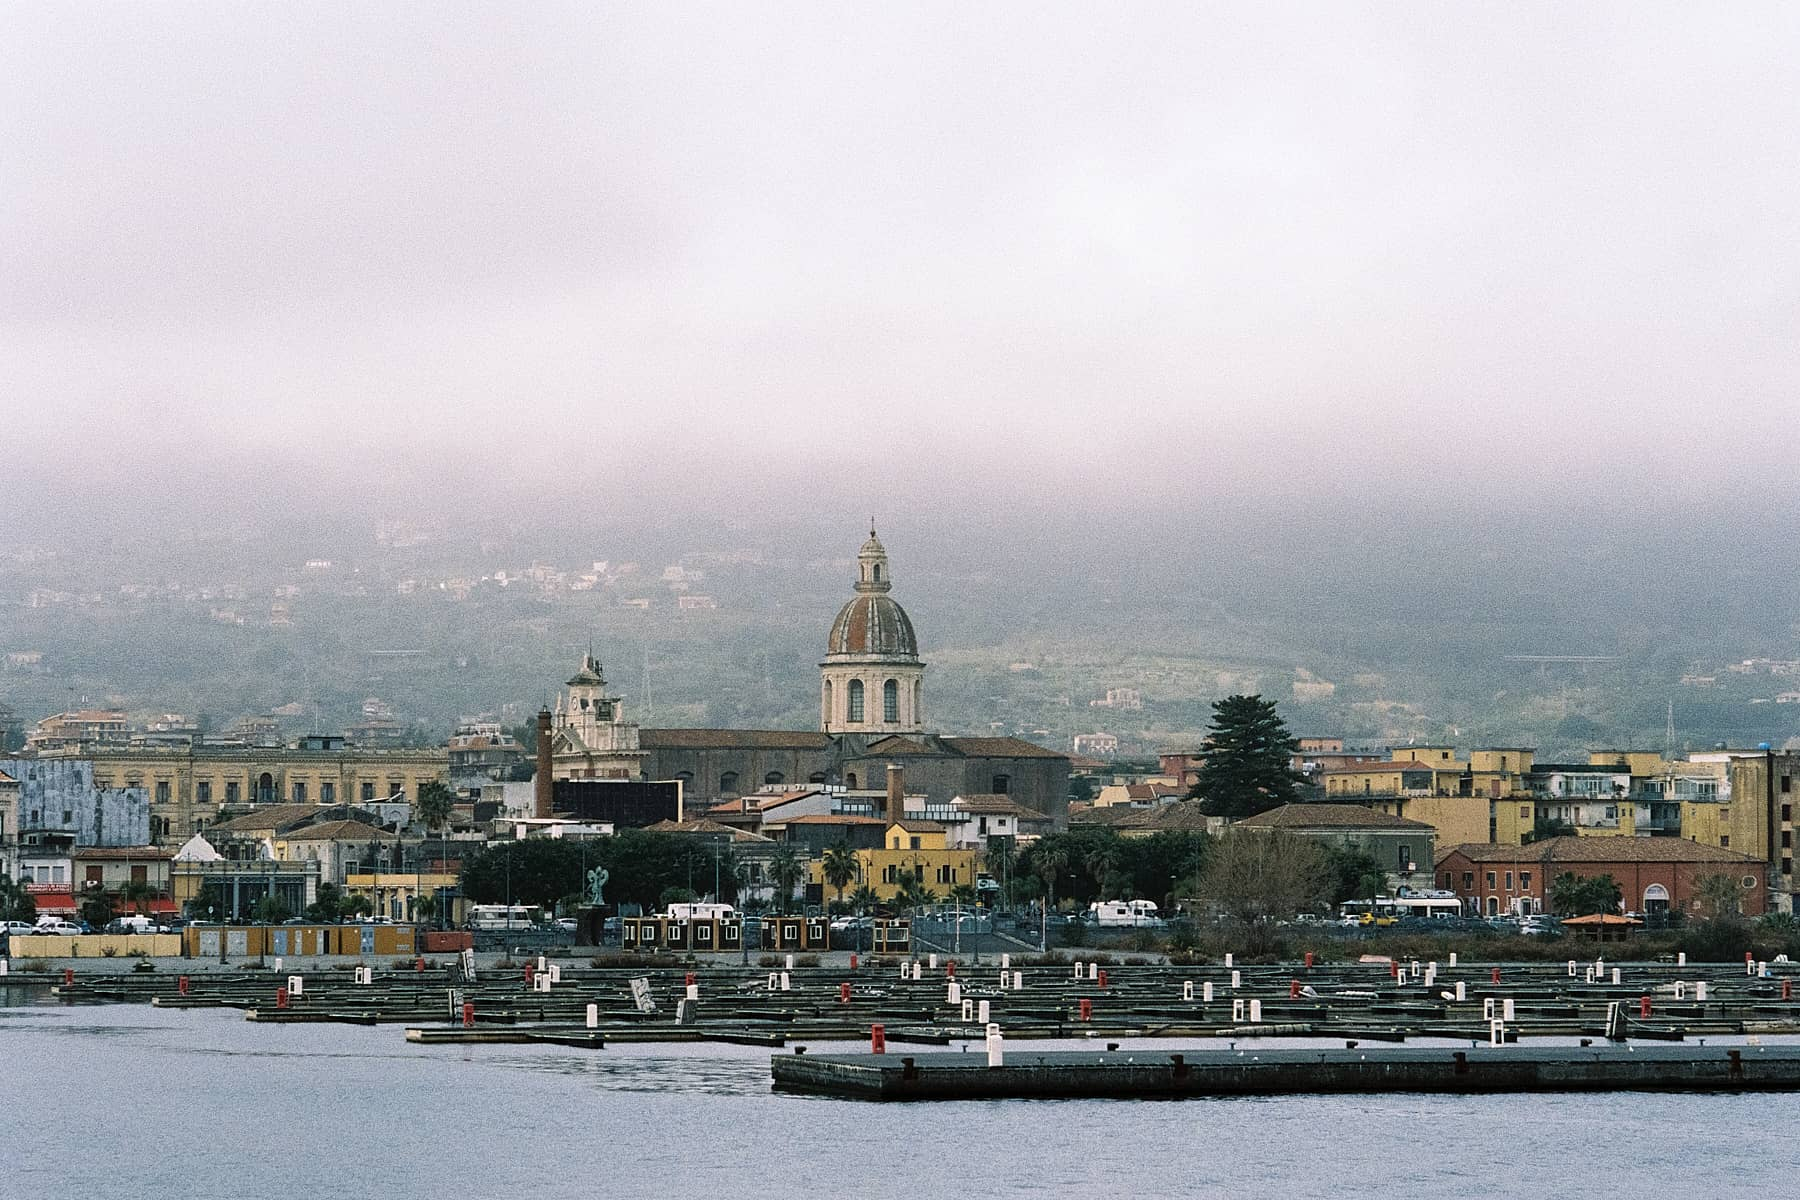 35mm film image of Sicily in winter by Thomas Berlin on Shoot It With Film